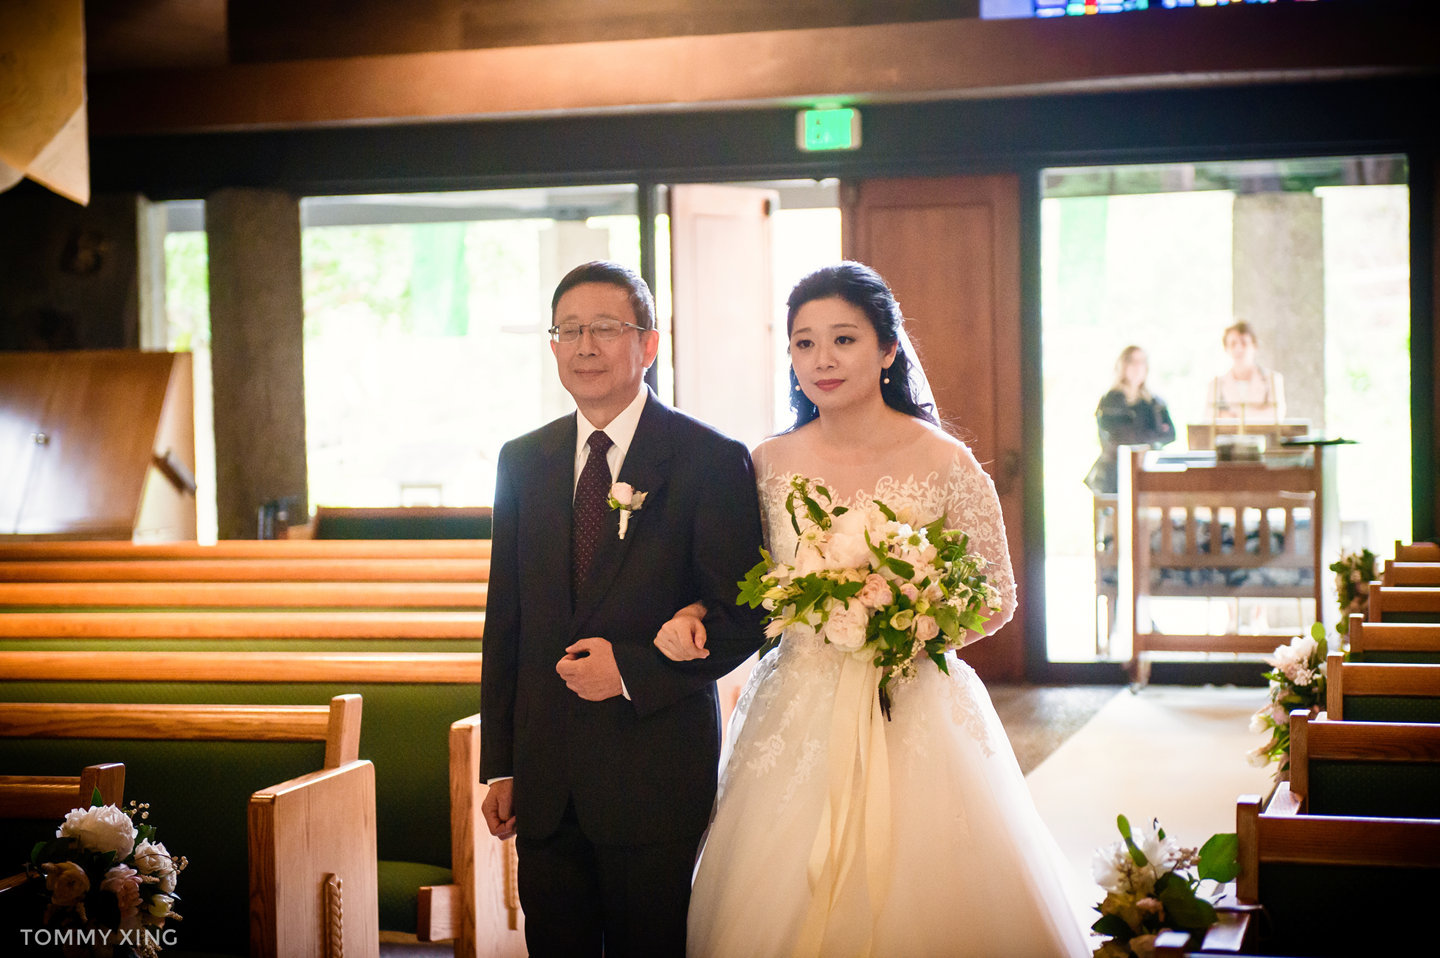 San Francisco Wedding Photography Valley Presbyterian Church WEDDING Tommy Xing Photography 洛杉矶旧金山婚礼婚纱照摄影师065.jpg